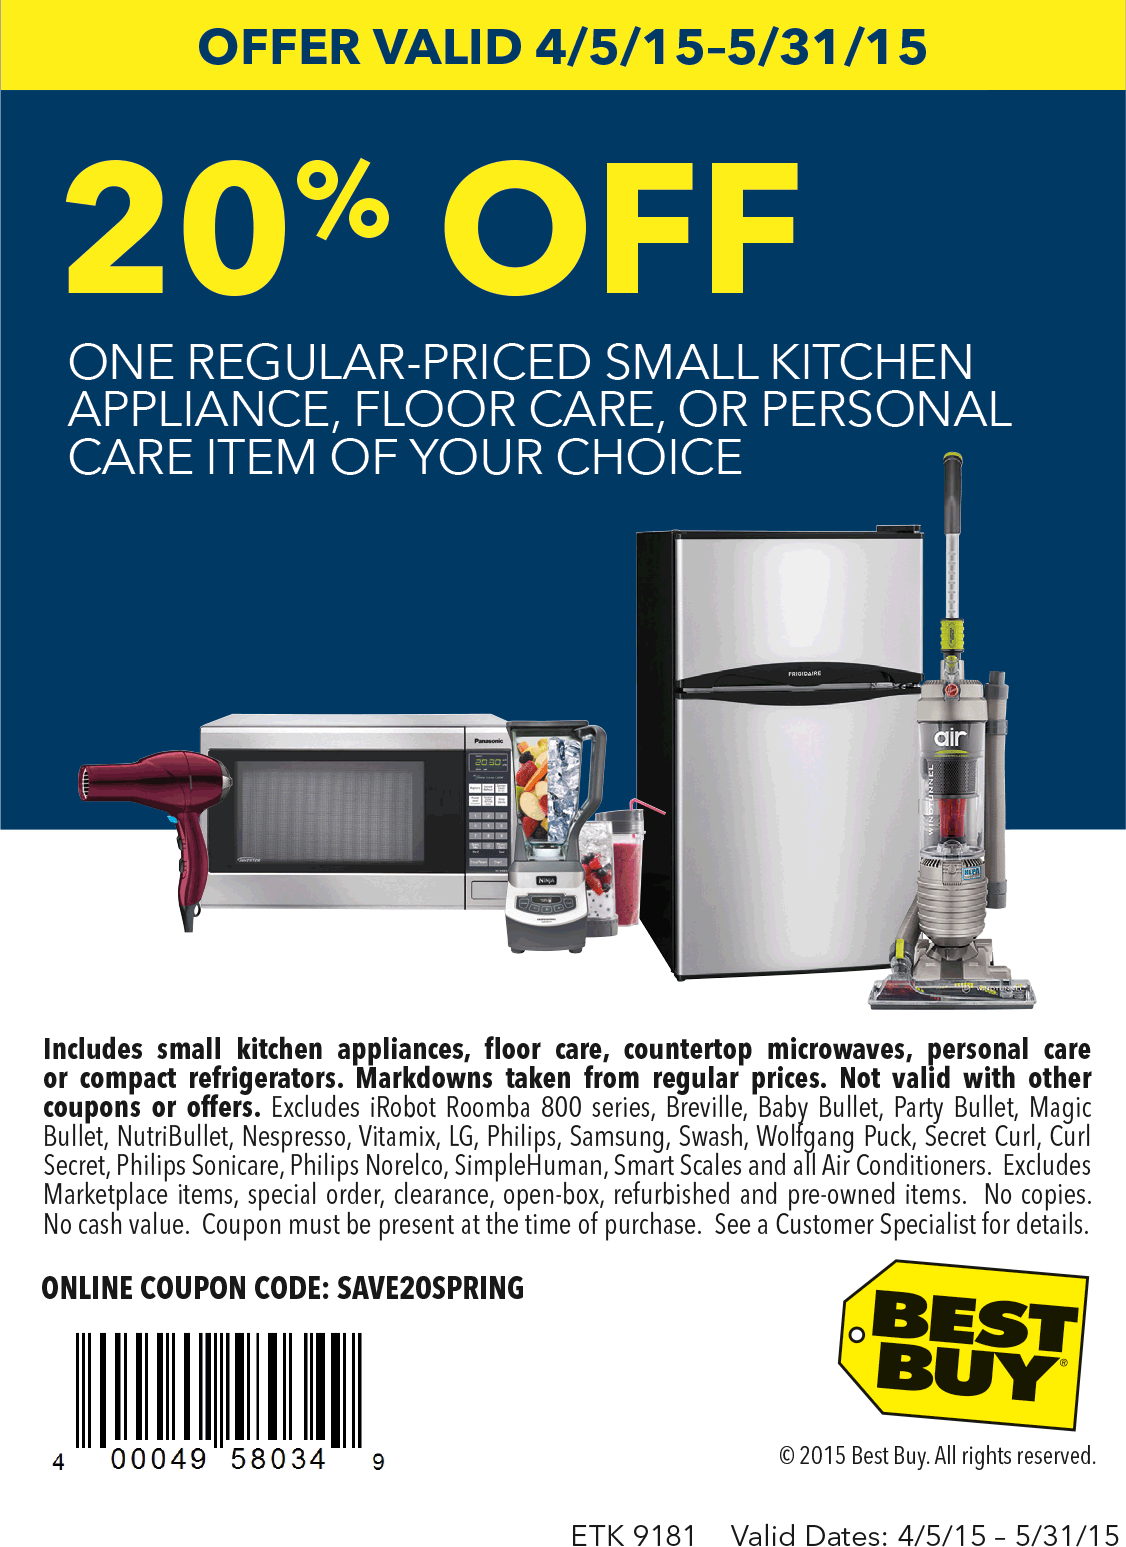 Best Buy Coupon March 2019 20% off a single appliance at Best Buy, or online via promo code SAVE20SPRING